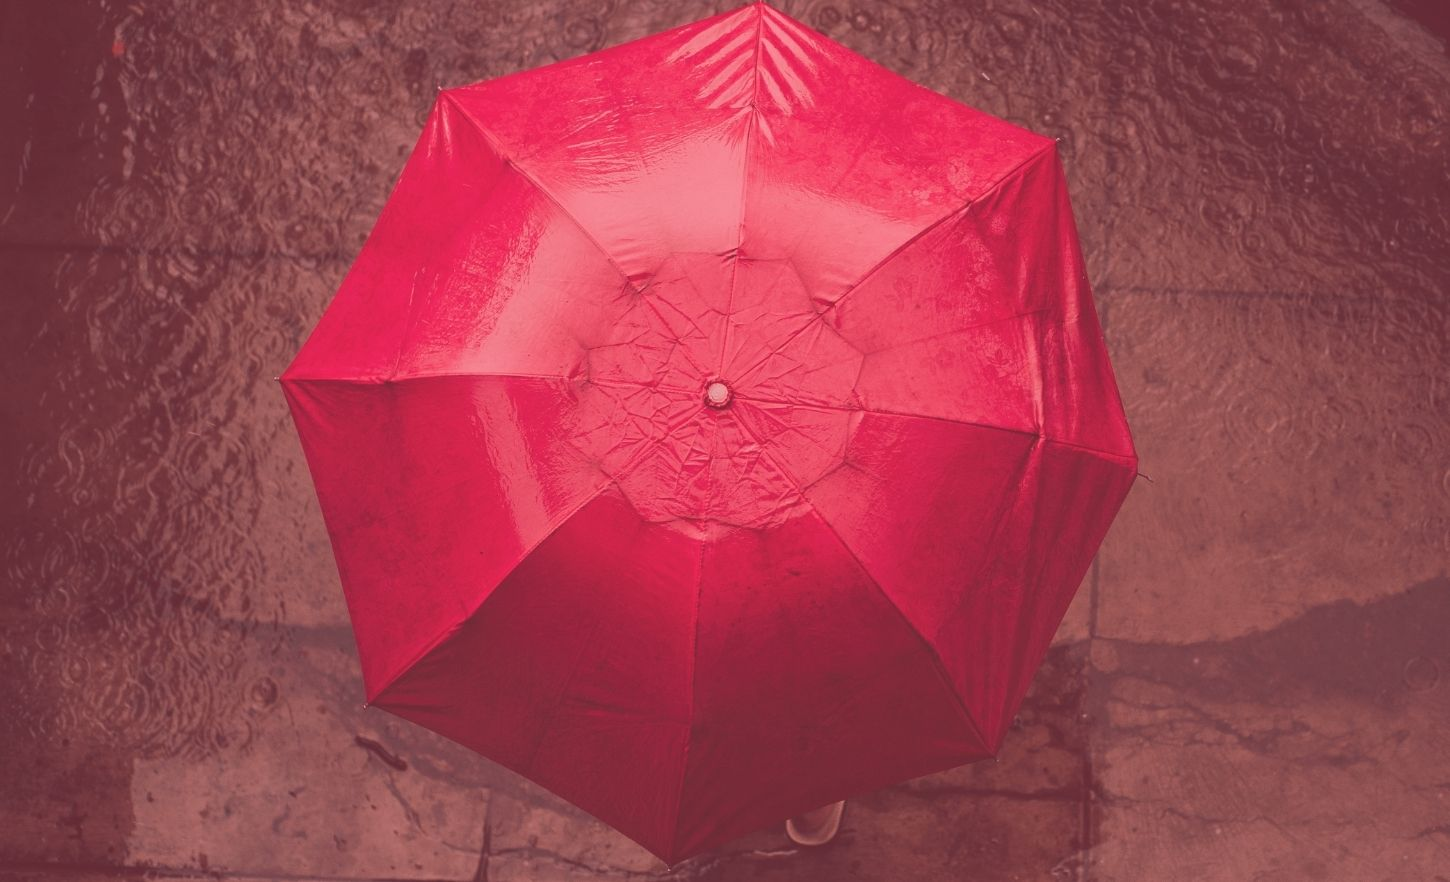 Red umbrella - Got You Covered - Managed Services - Infront